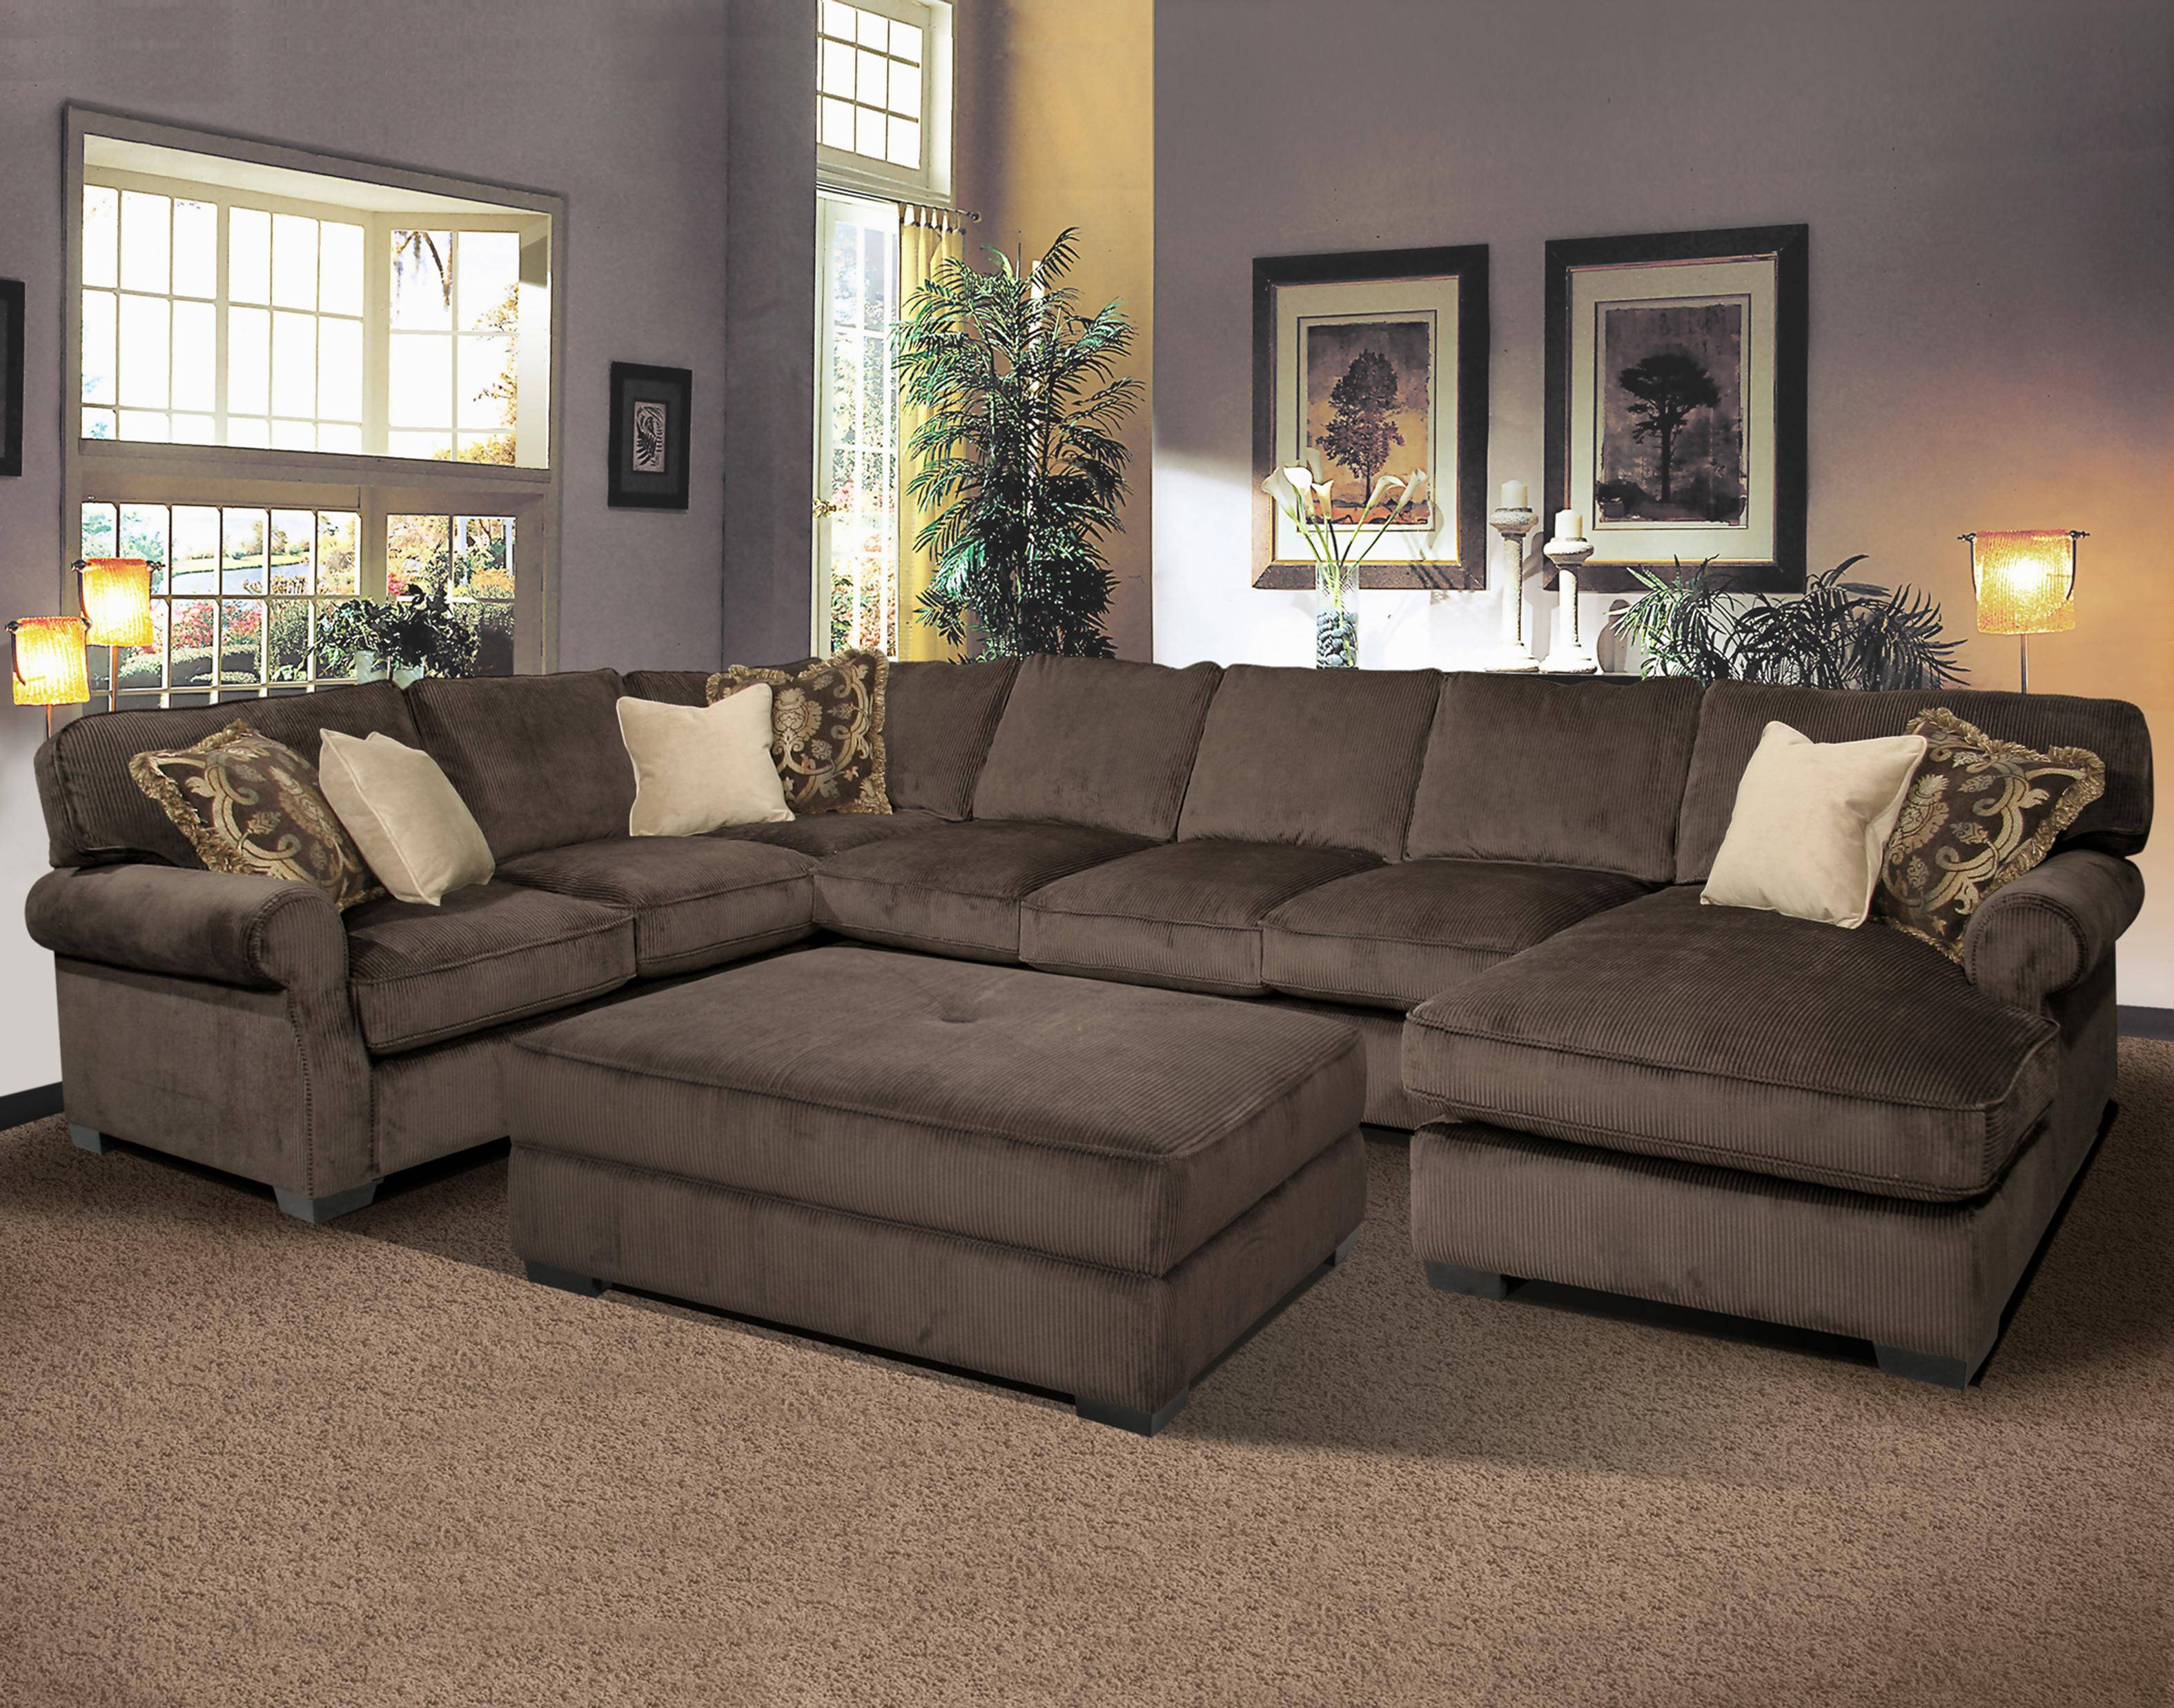 Fresh Large Sectional Sofa With Chaise Lounge 69 For Your Abbyson with regard to Sectional Sofa With Large Ottoman (Image 6 of 30)